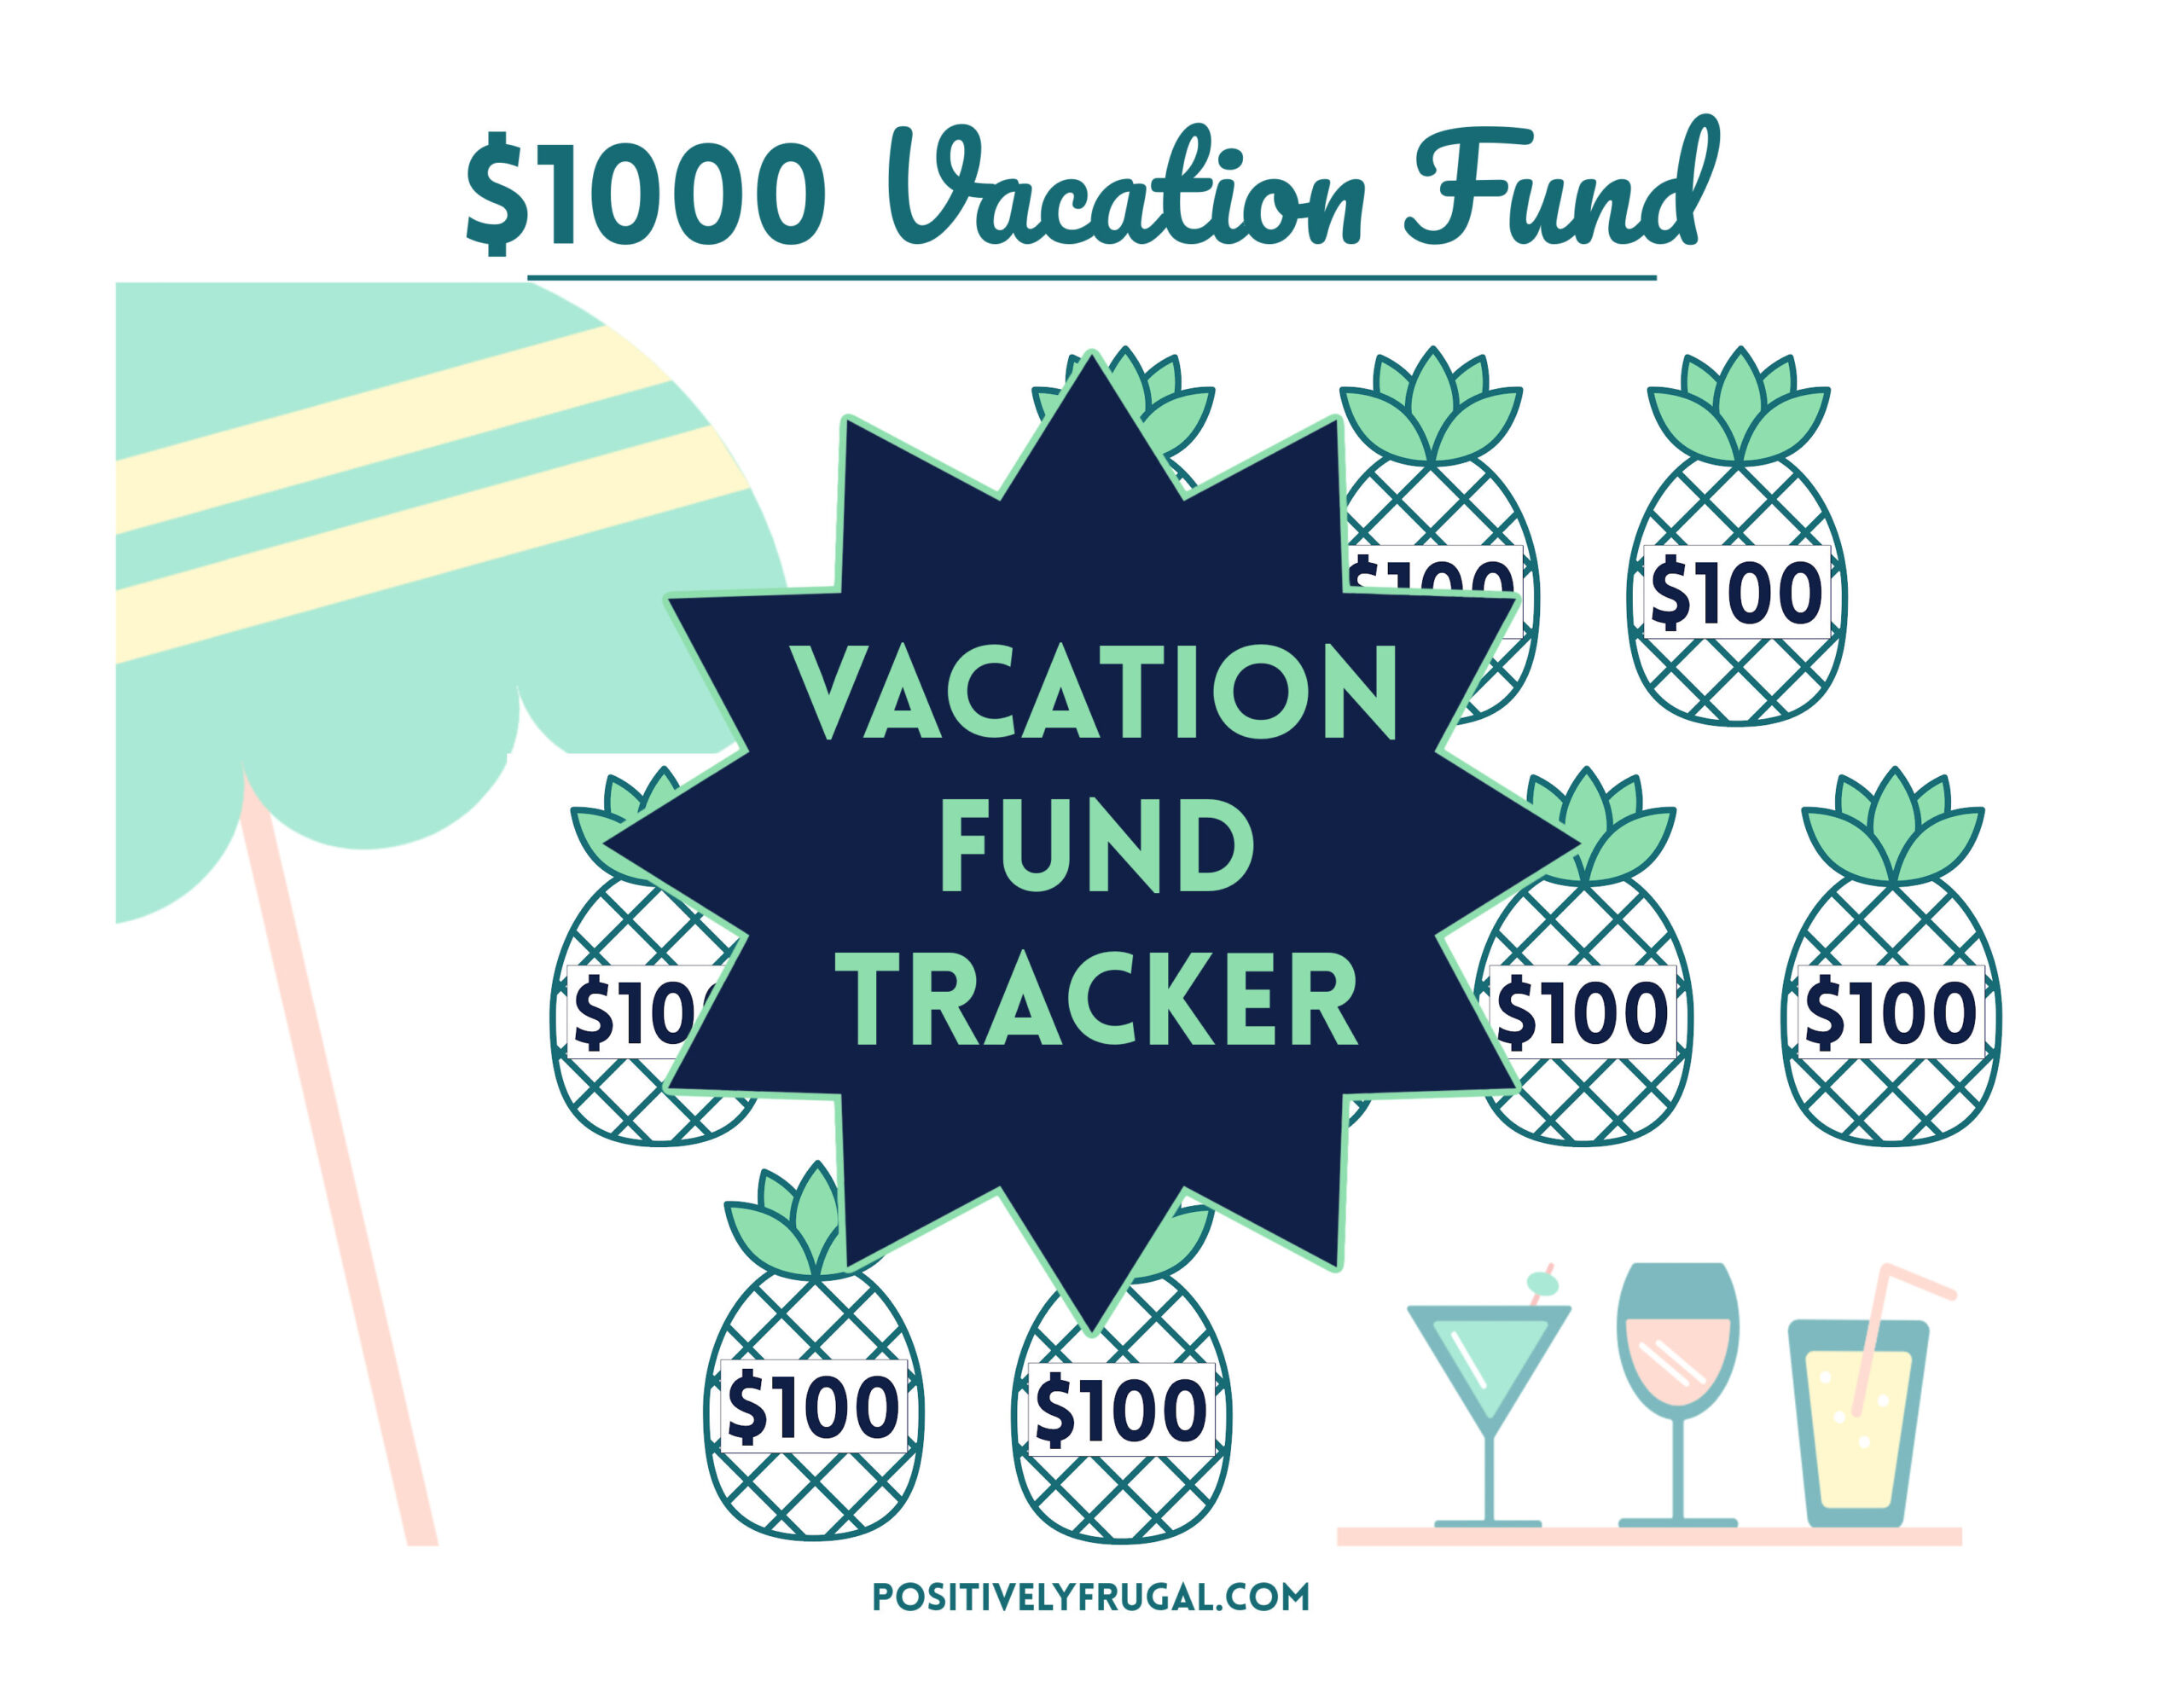 Vacation Fund Tracker by PositivelyFrugal.com